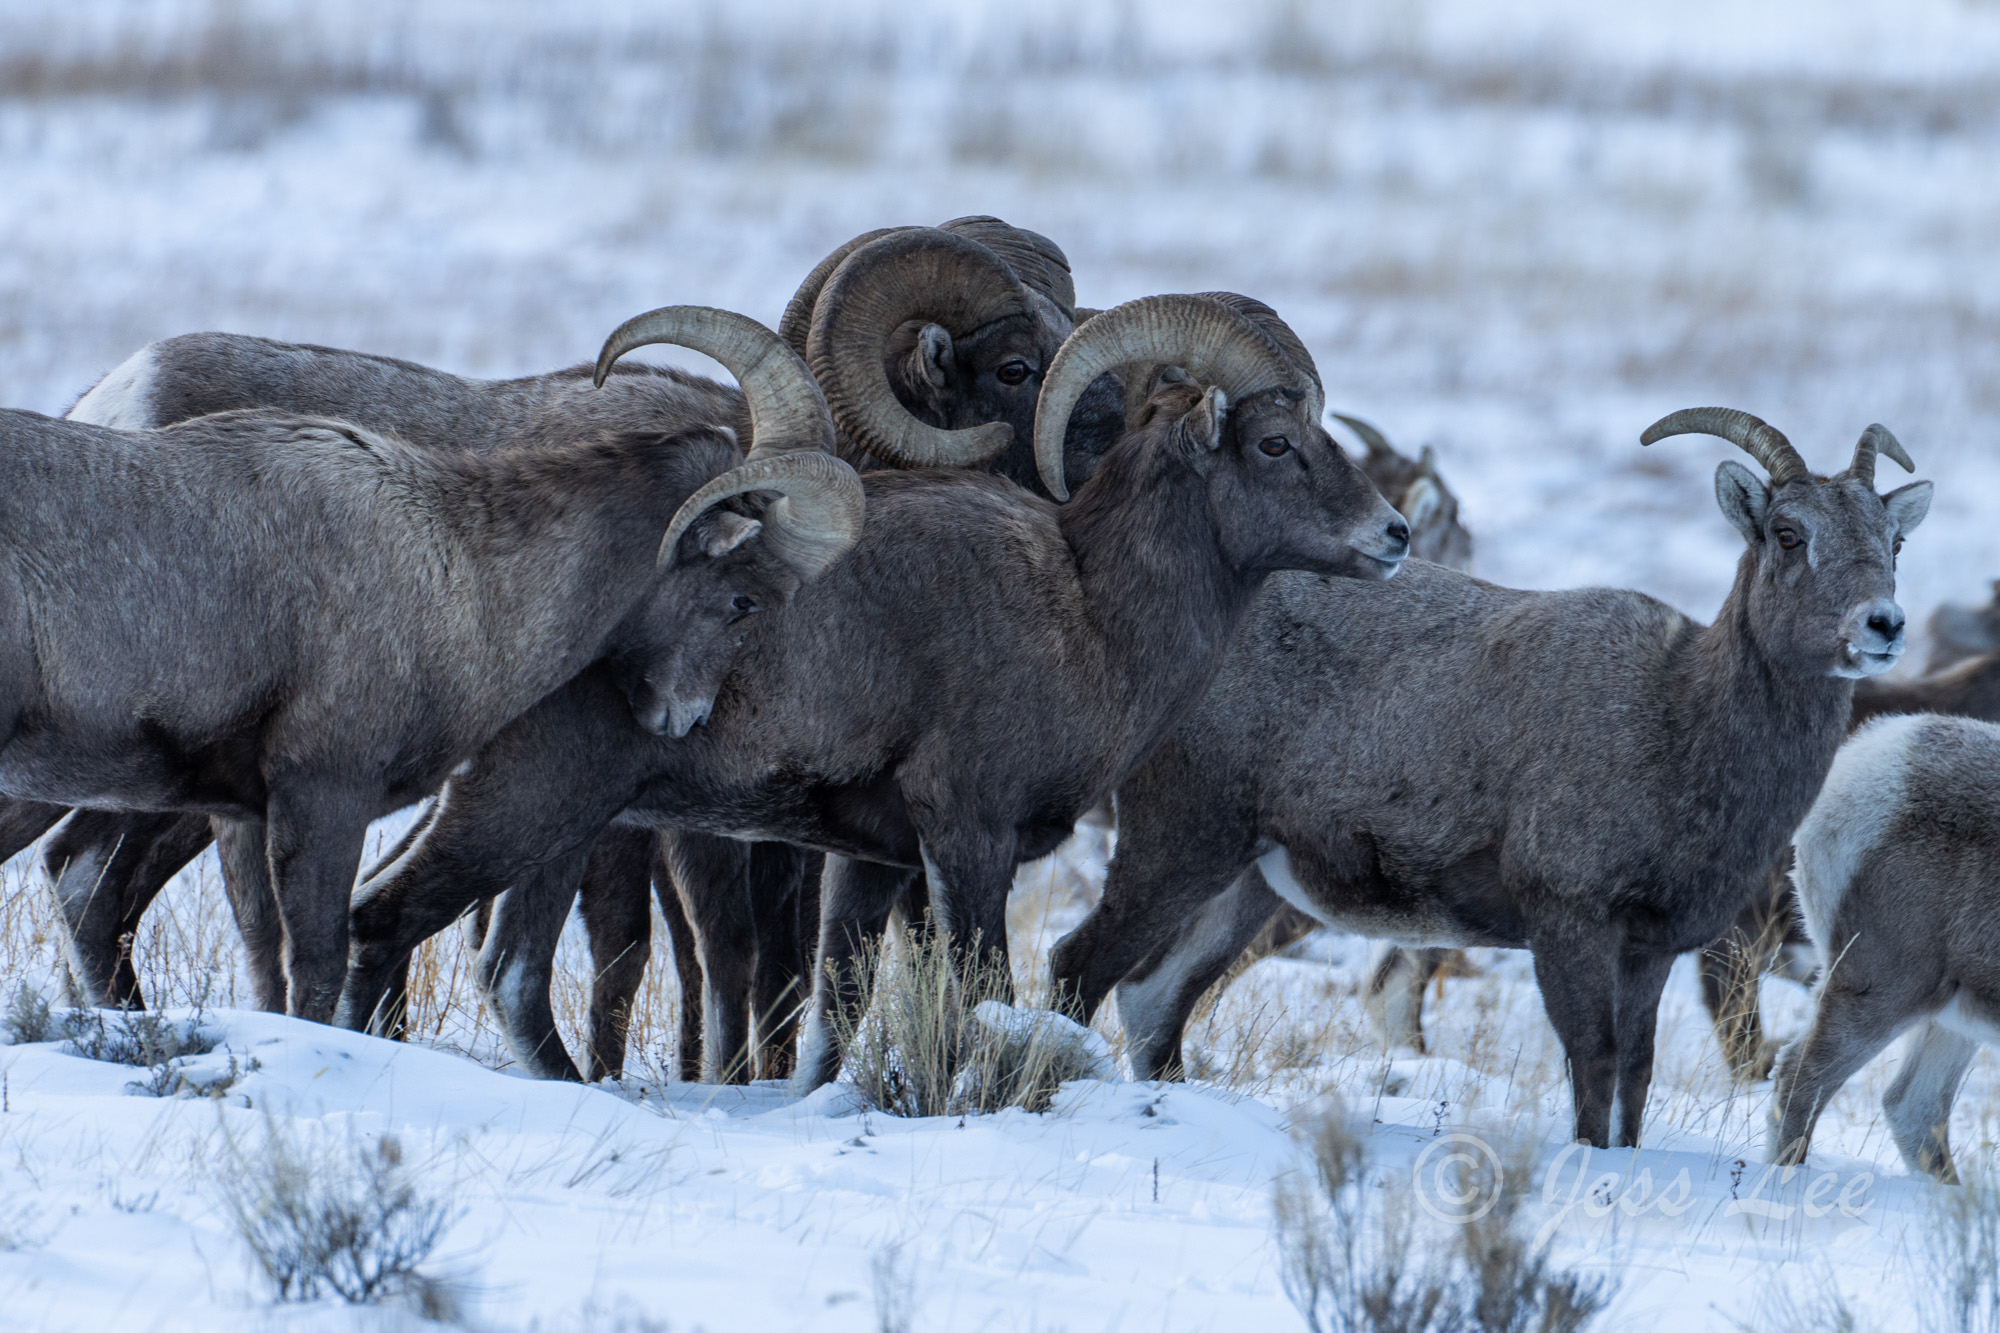 photo of big horn sheep in Grand Tetons, National Park, winter, Wyoming, Jackson Hole, cold, snow, winter, wildlife photography, wilderness, landscape print, fine art prints, high quality, high resolu, photo